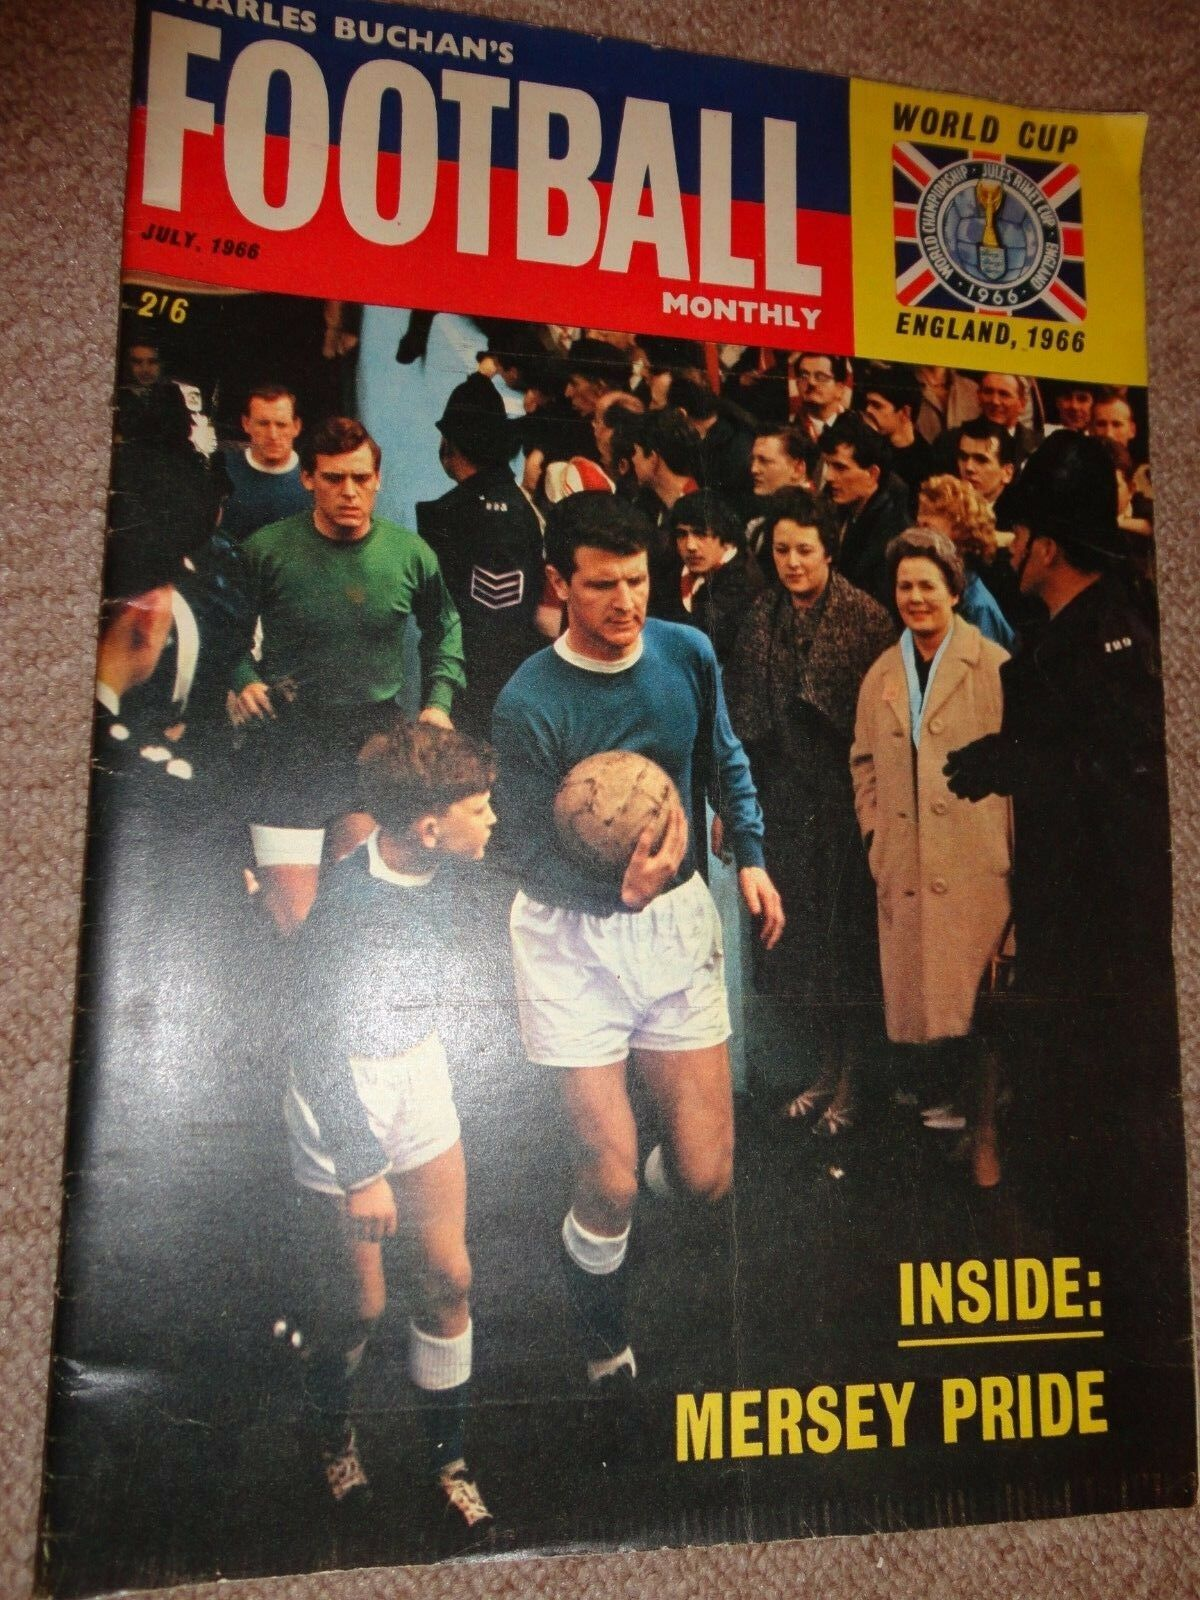 magazine charles Buchan's Football 1966 world cup issue 179 mersey pride yeats